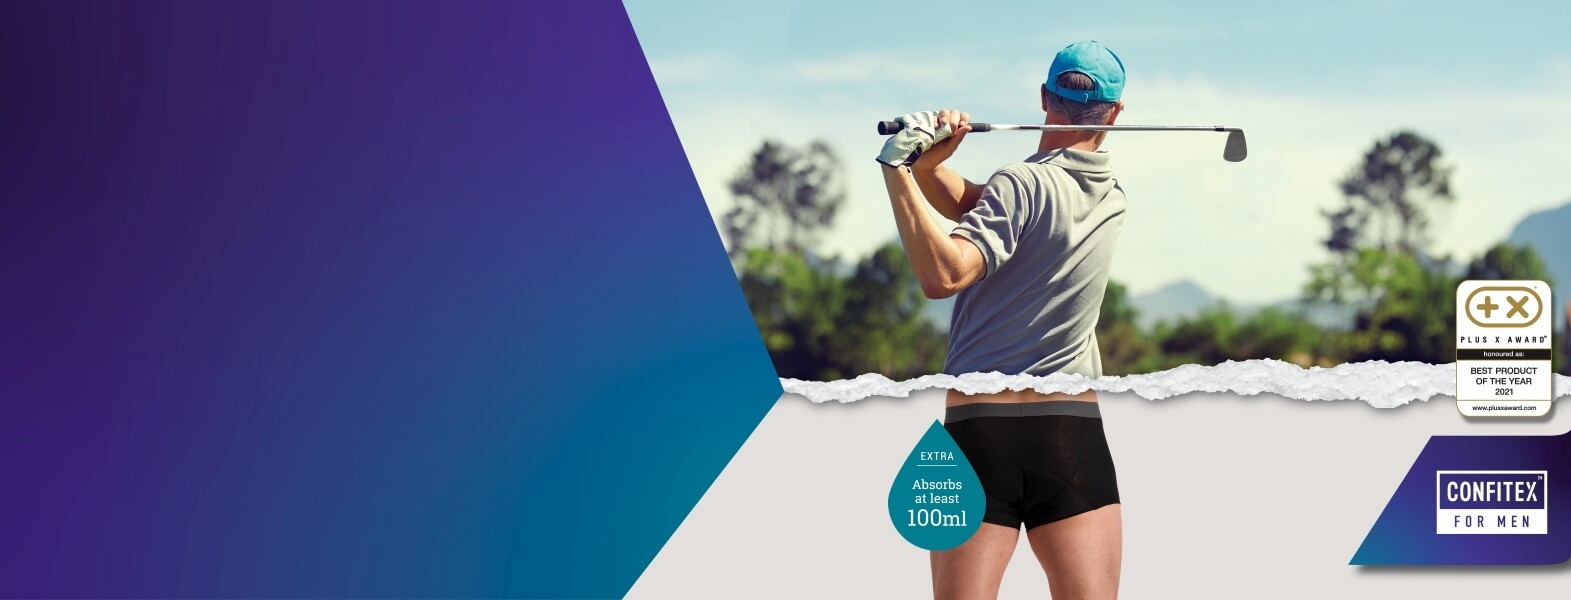 a golfer feel comfortable and secure with our leakproof underwear